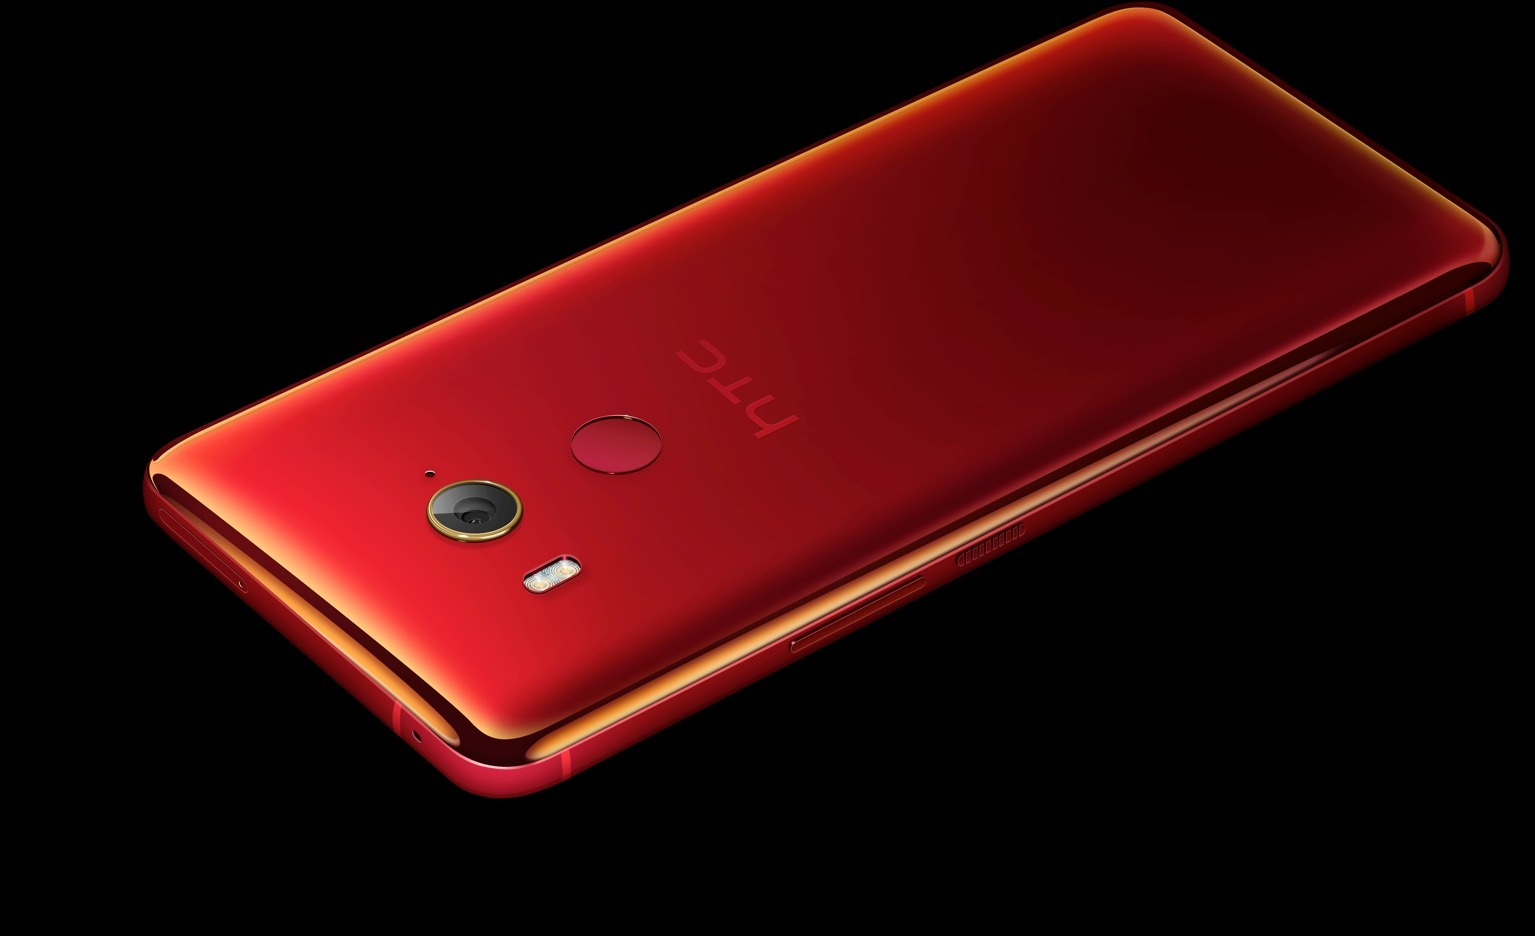 HTC U11 EYEs launched officially with 18:9 display & Snapdragon 652 1